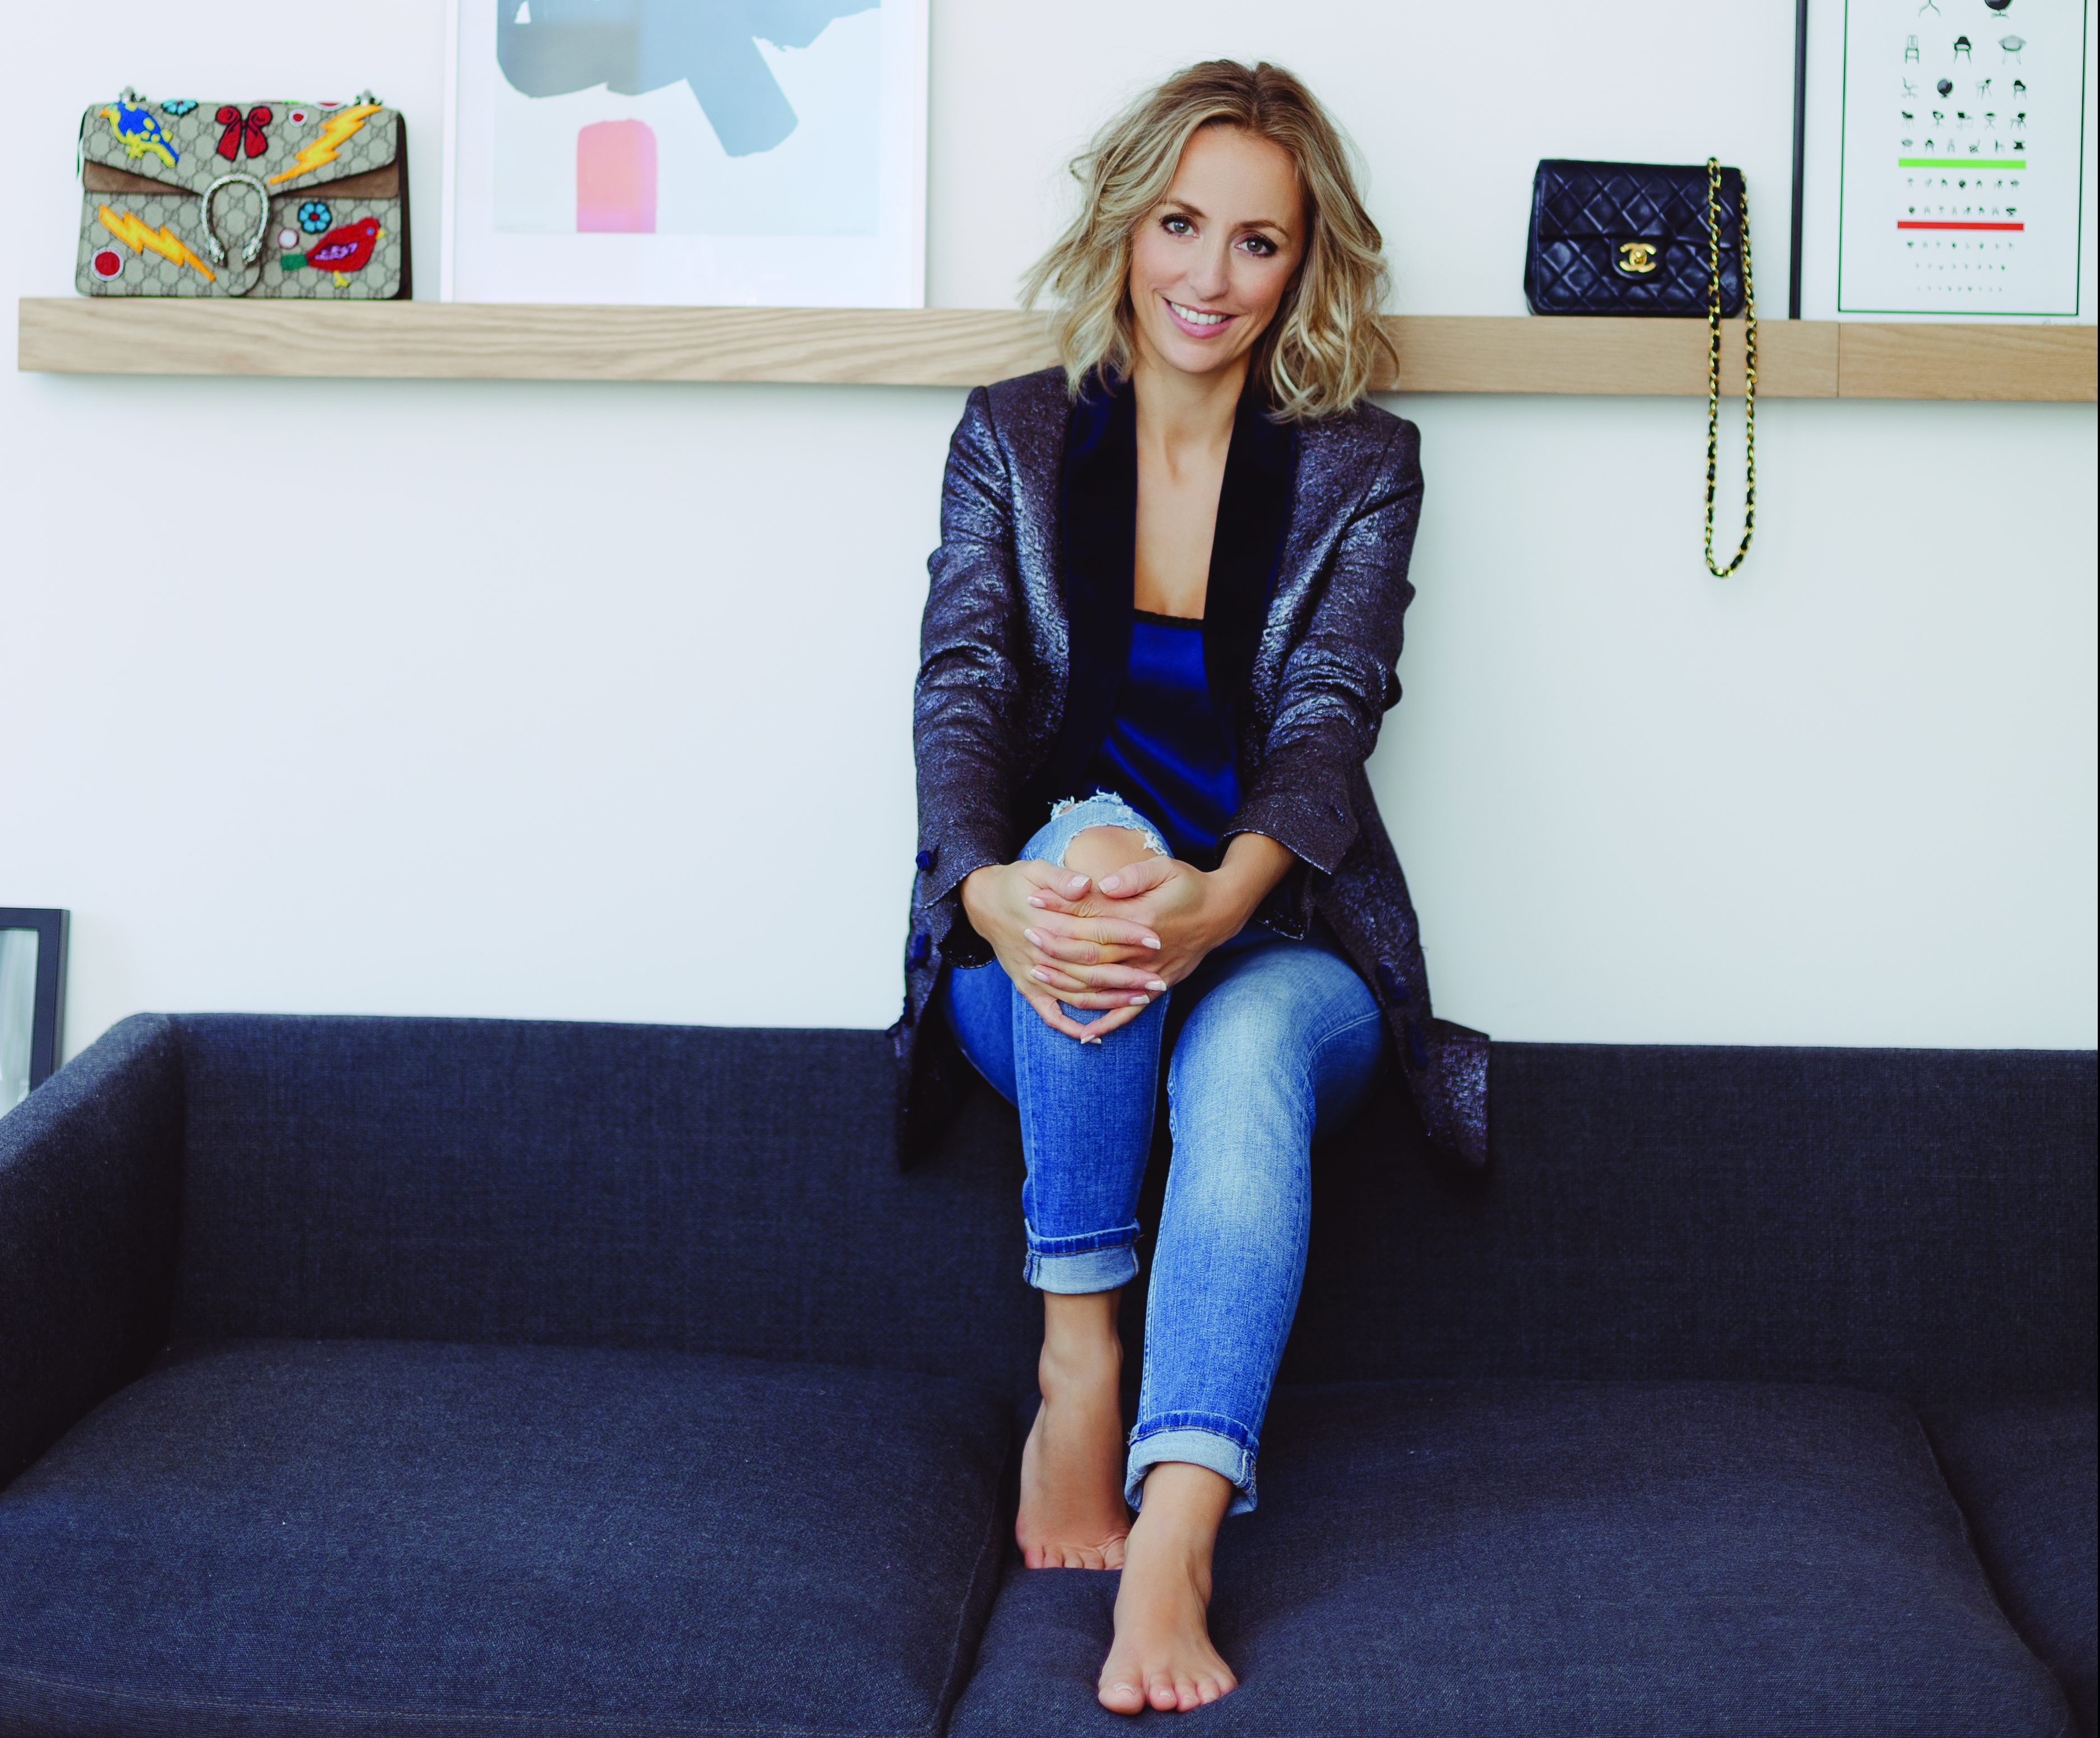 Fanny Moizant, Co-Founder of Vestiaire Collective